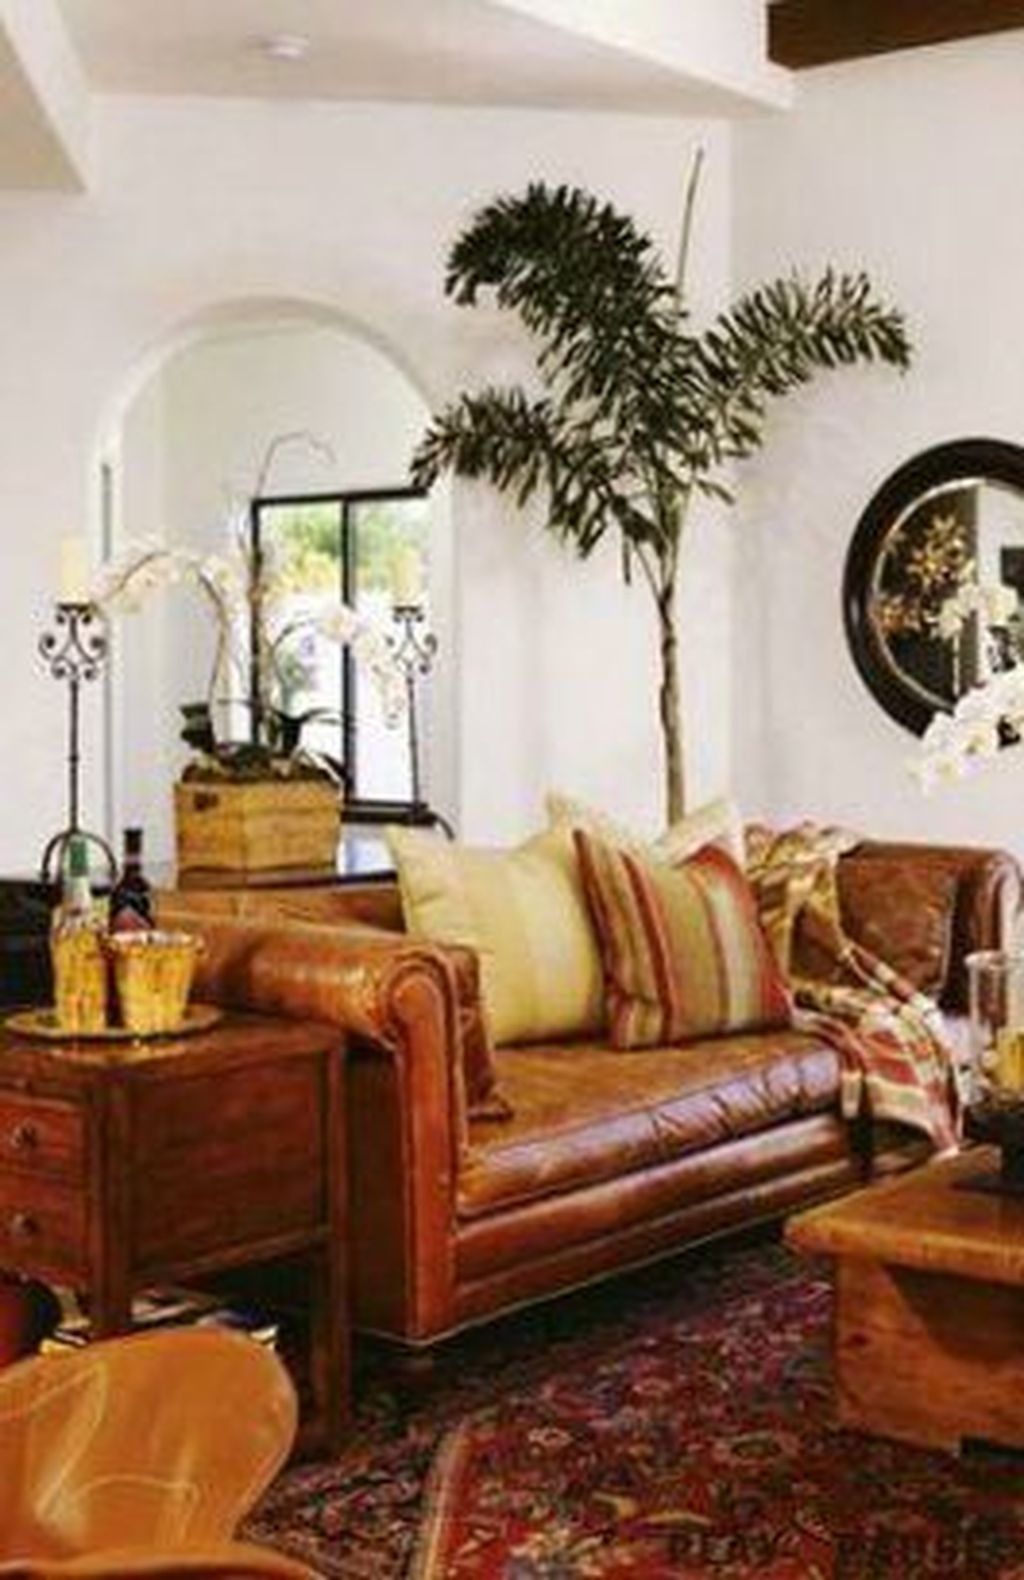 34 Extraordinary Brown Living Room Design Ideas That You Need To Try Leather Living Room Furniture Living Room Decor Brown Couch Living Room Decor